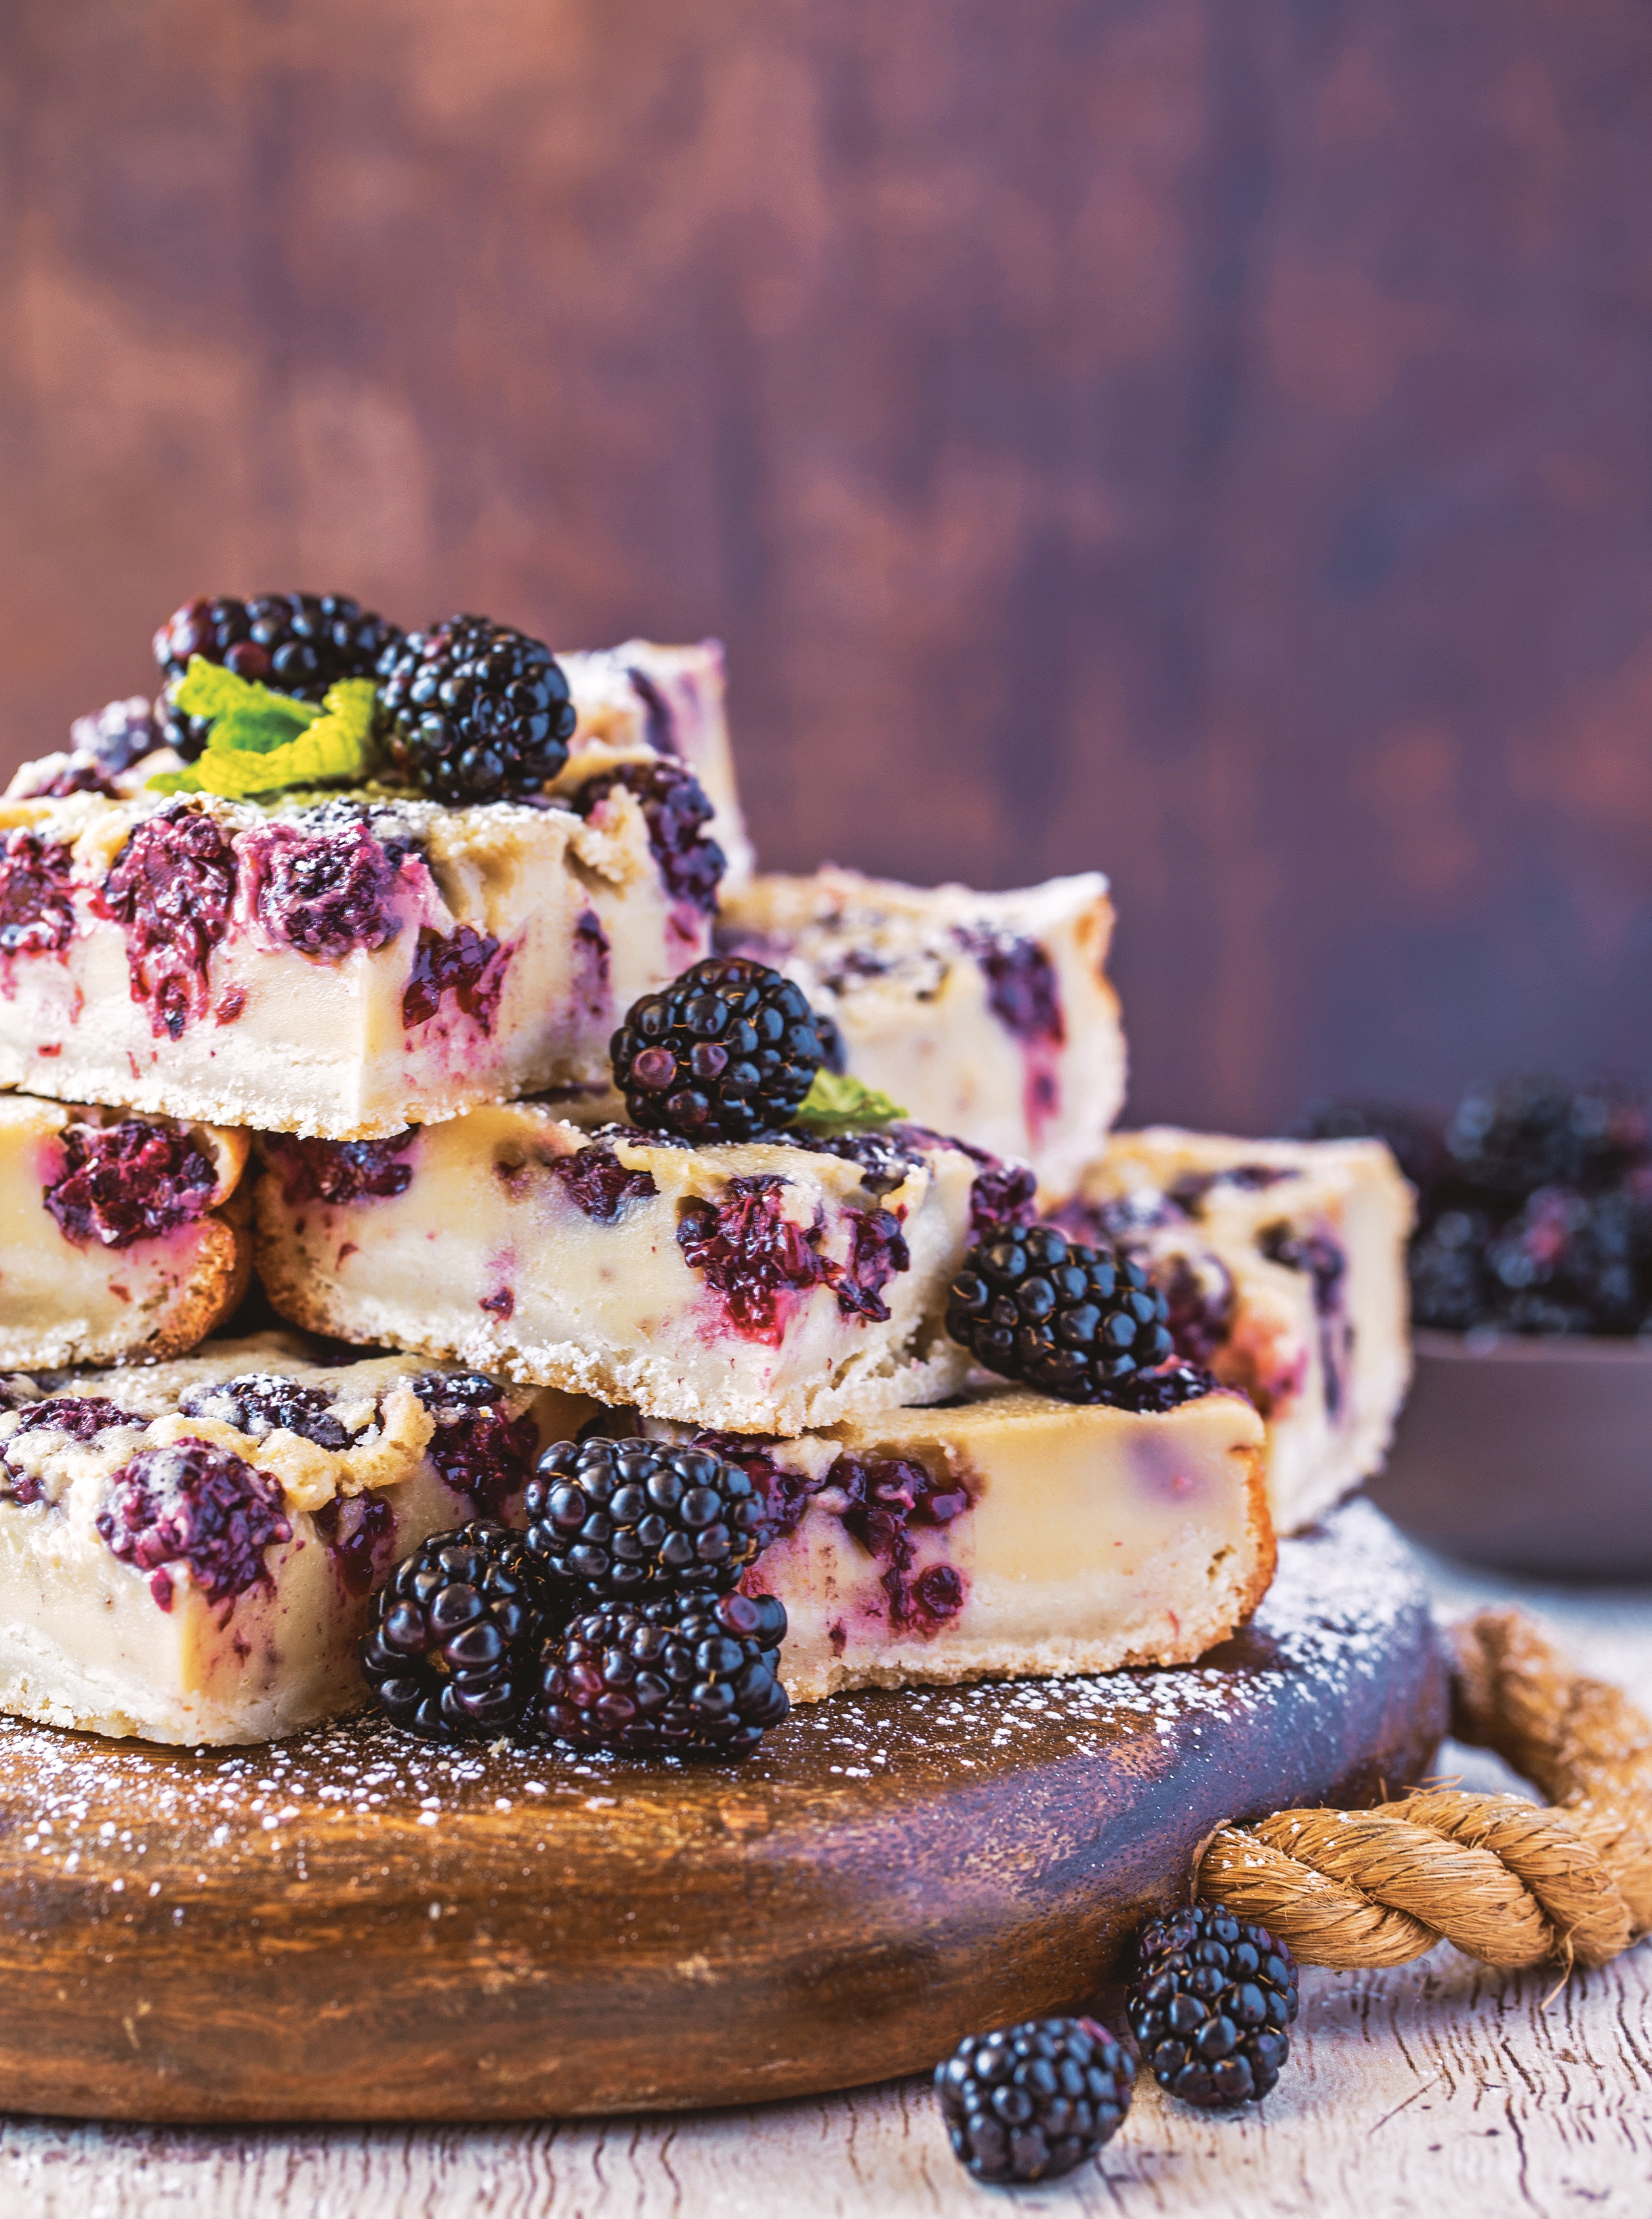 Decadent Fruit Desserts Blackberry Custard Bars.jpg